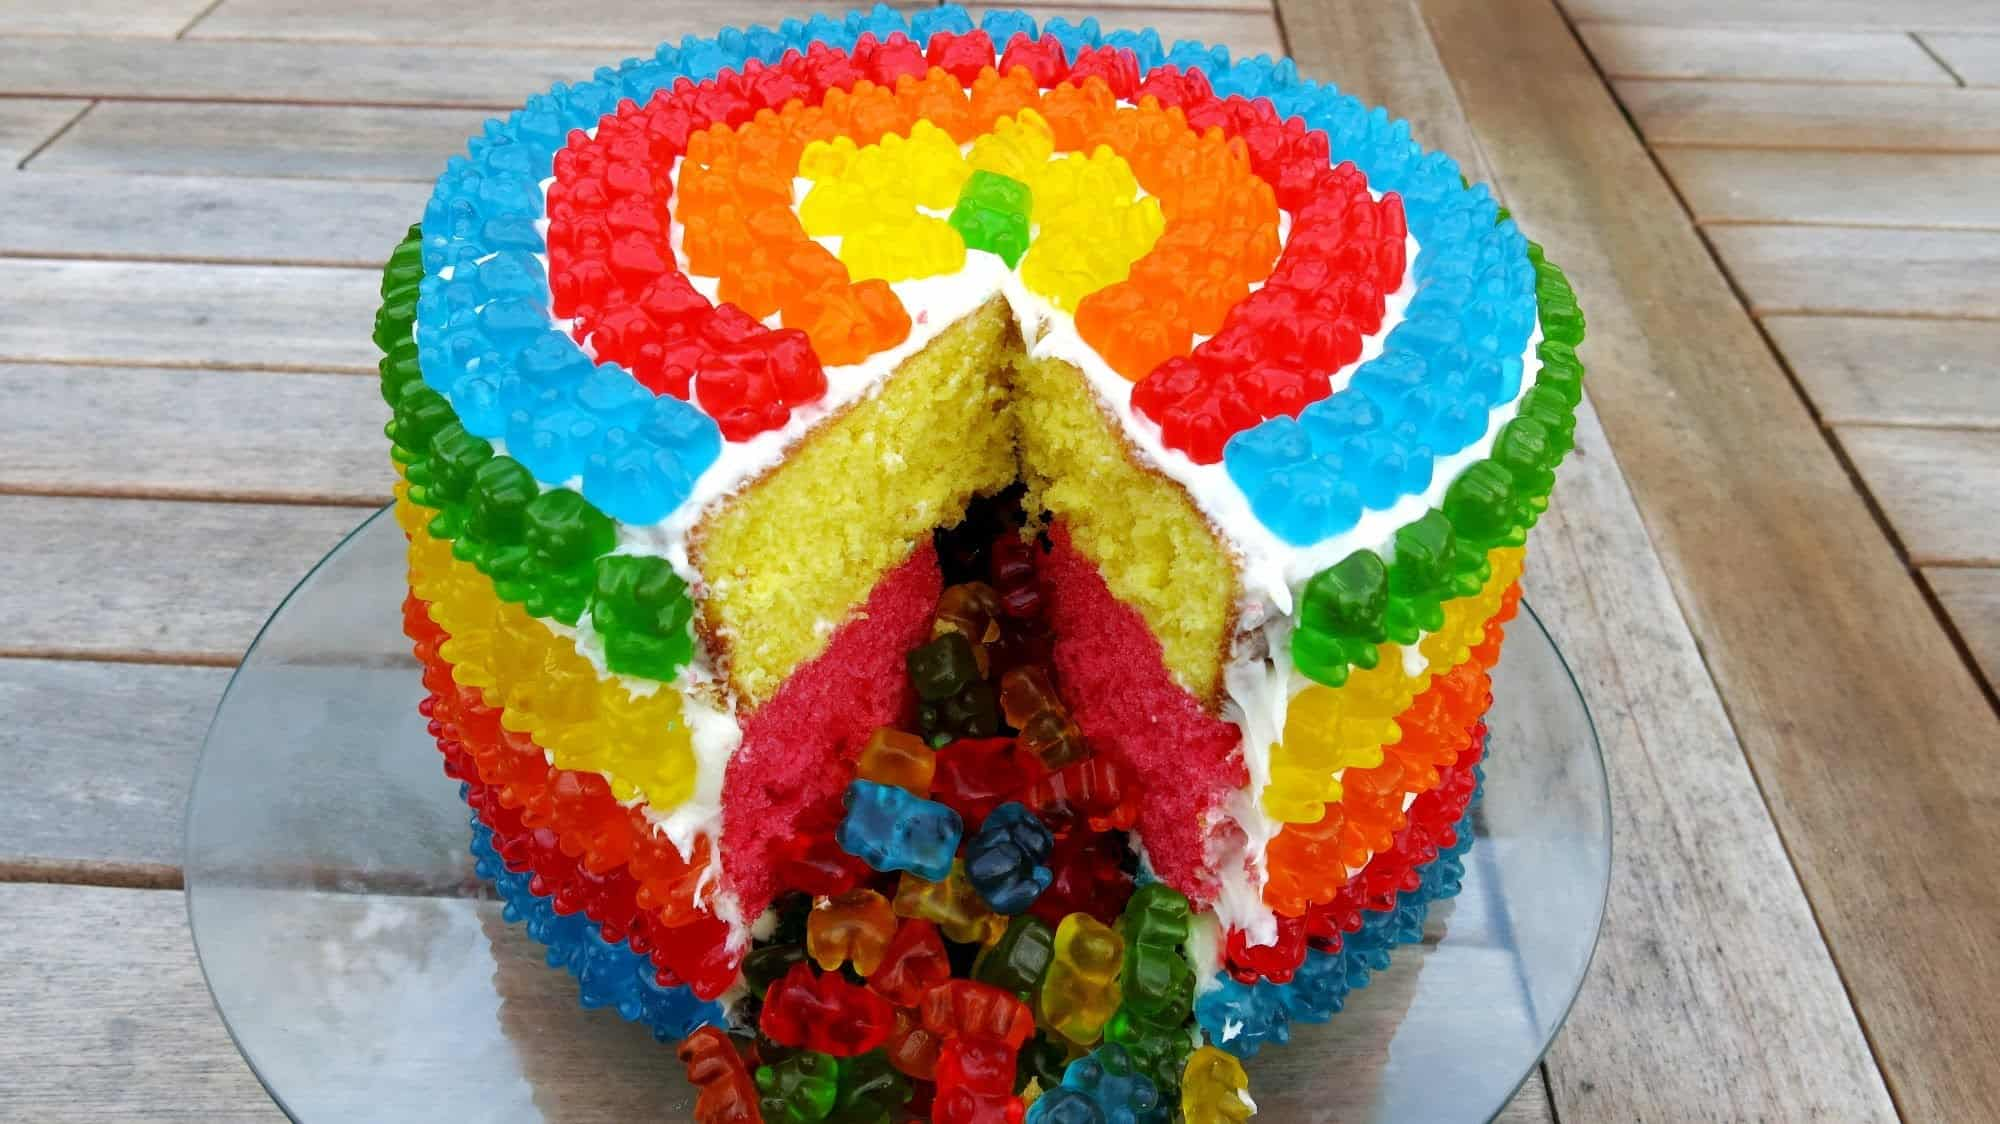 15 Awesome Recipes Using Gummy Candies